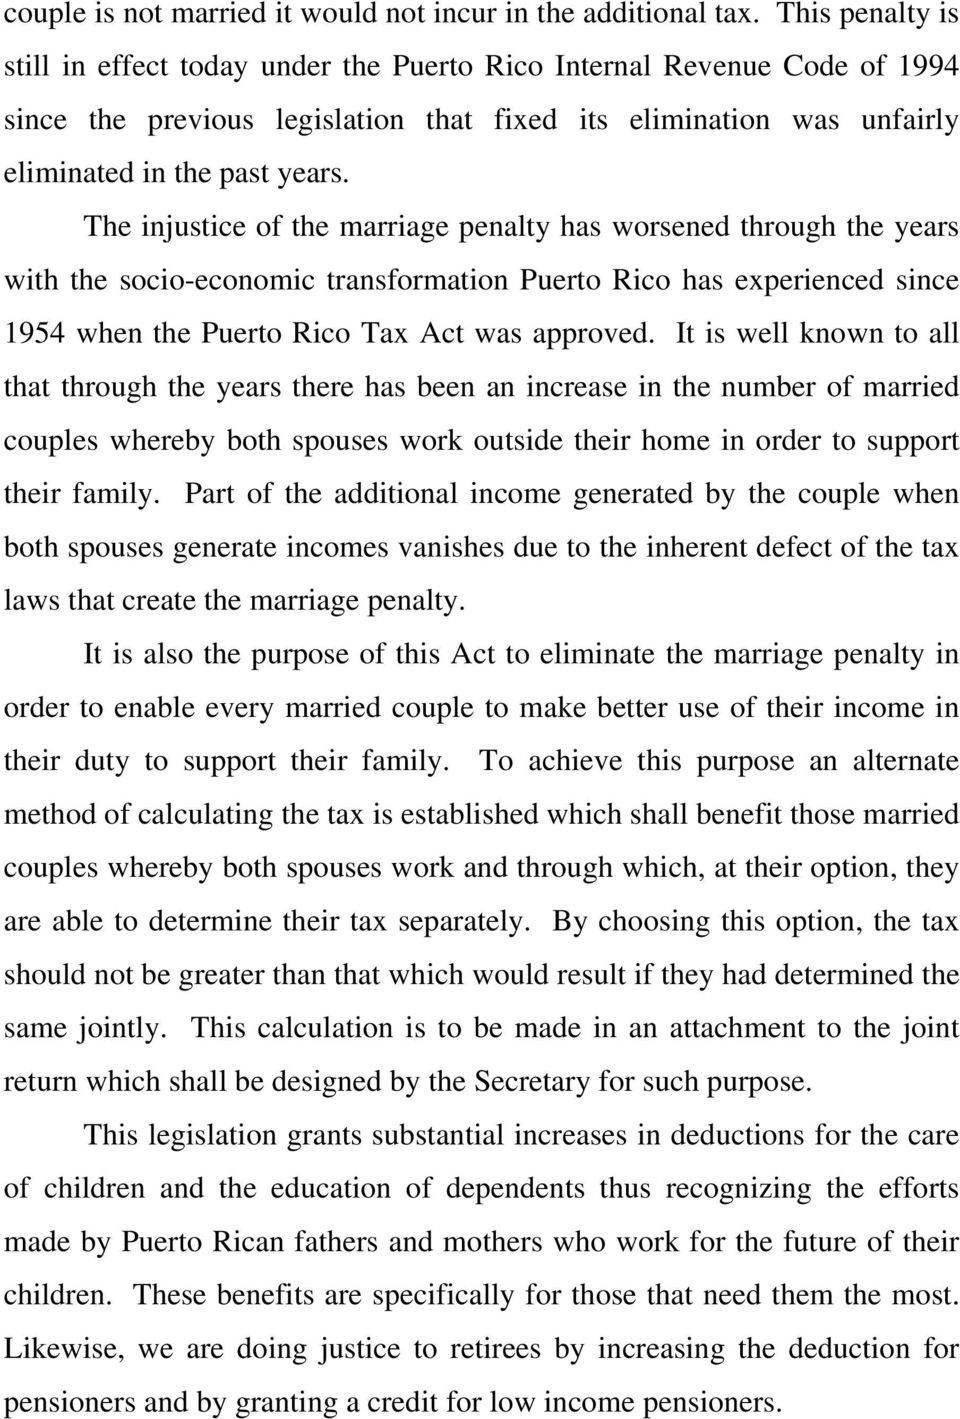 The injustice of the marriage penalty has worsened through the years with the socio-economic transformation Puerto Rico has experienced since 1954 when the Puerto Rico Tax Act was approved.